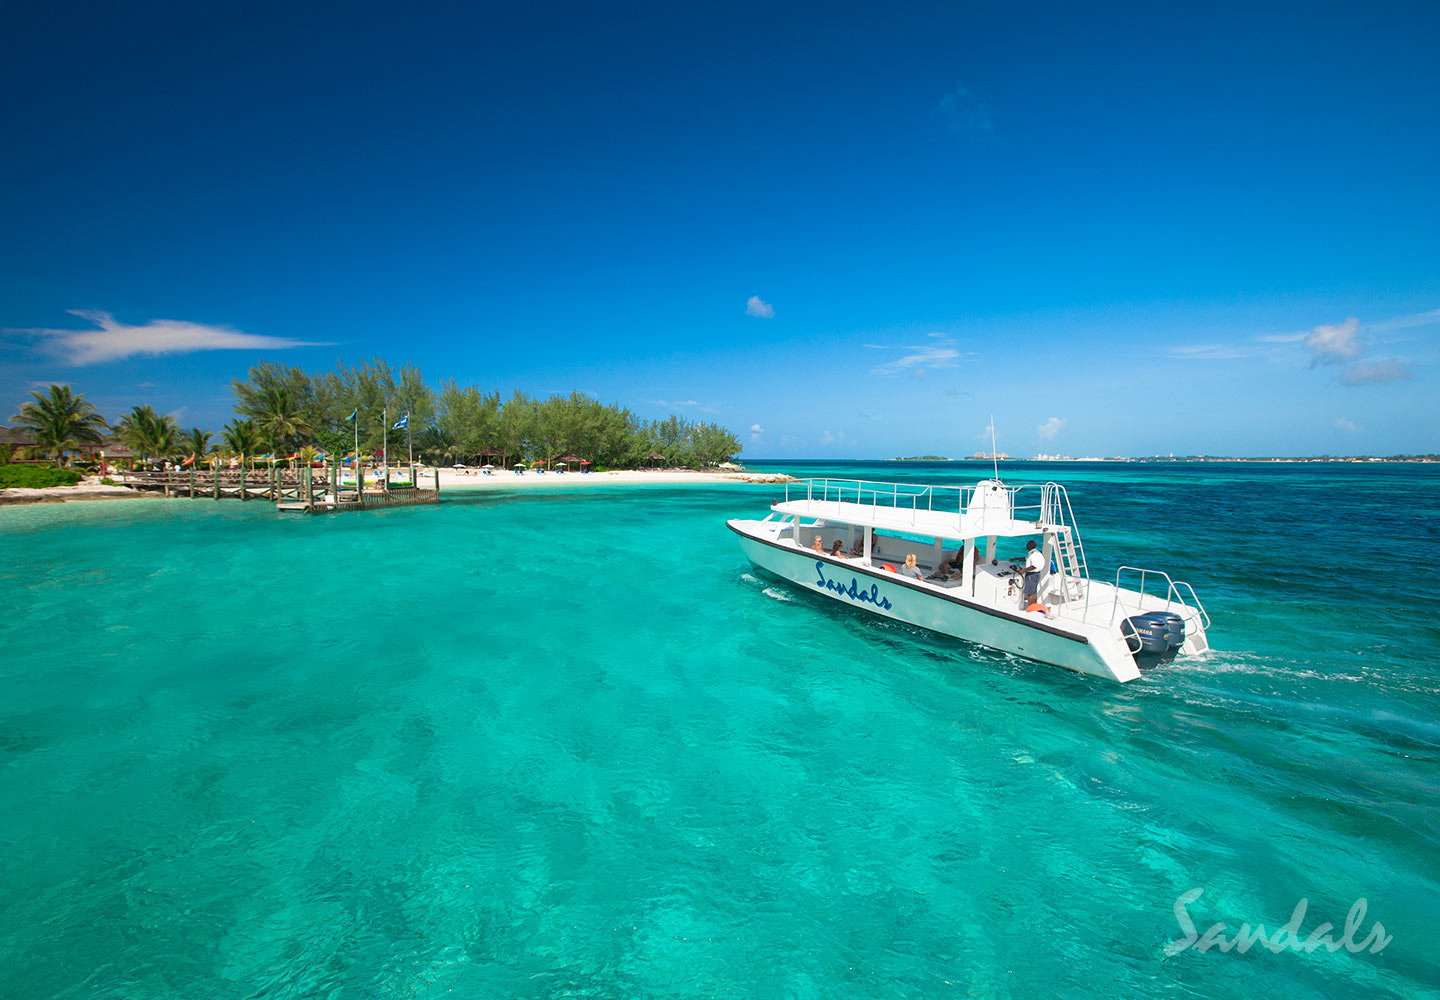 Travel Agency All-Inclusive Resort Sandals Royal Bahamian 011